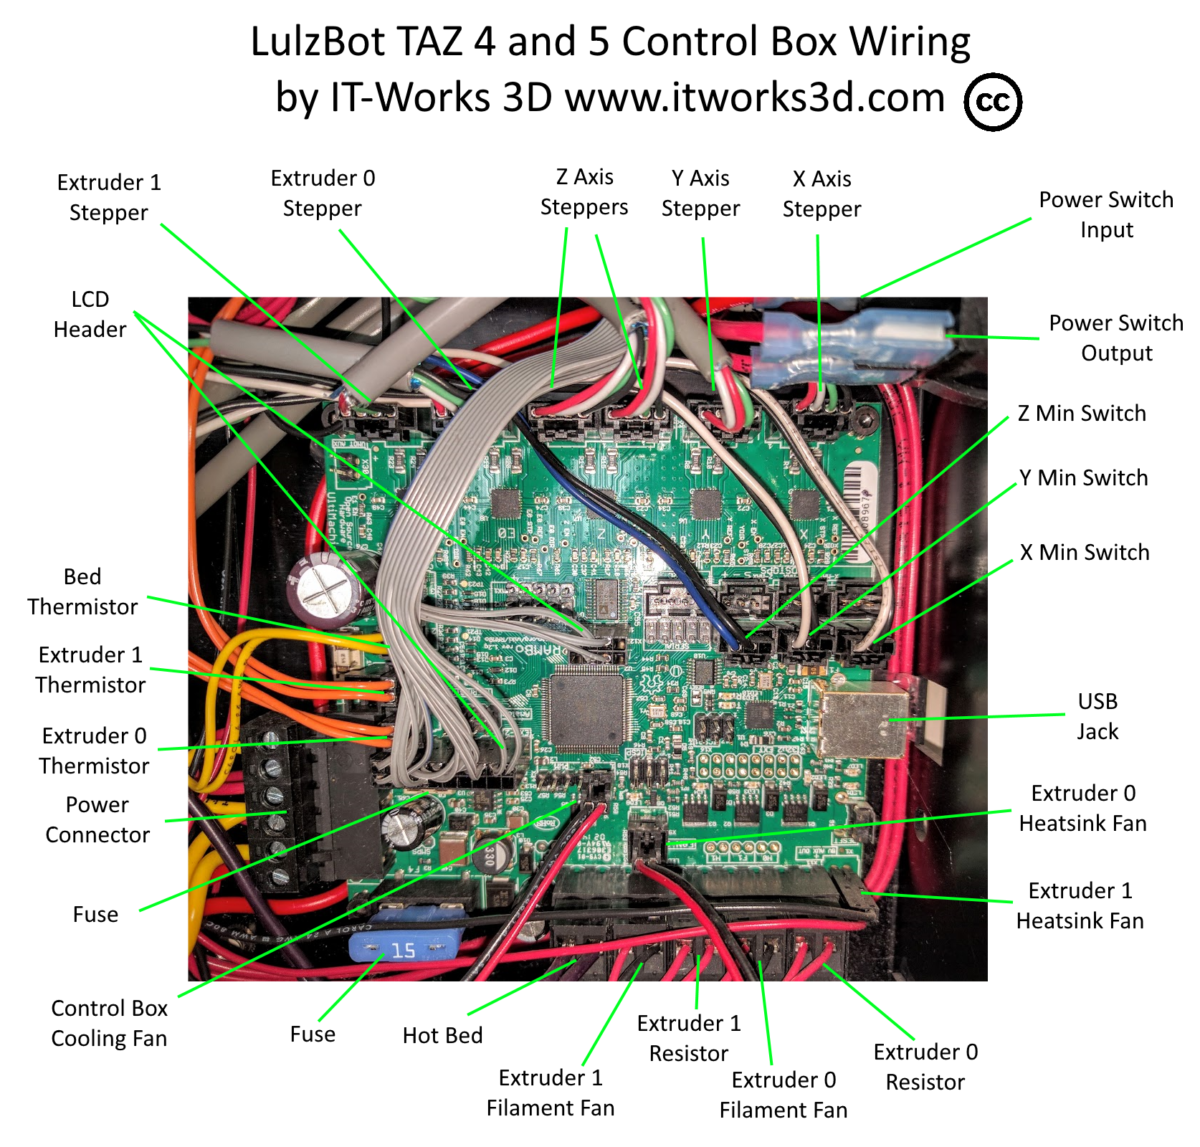 Lulzbot Taz 5 Control Box Wiring It Works 3d Print Diagram